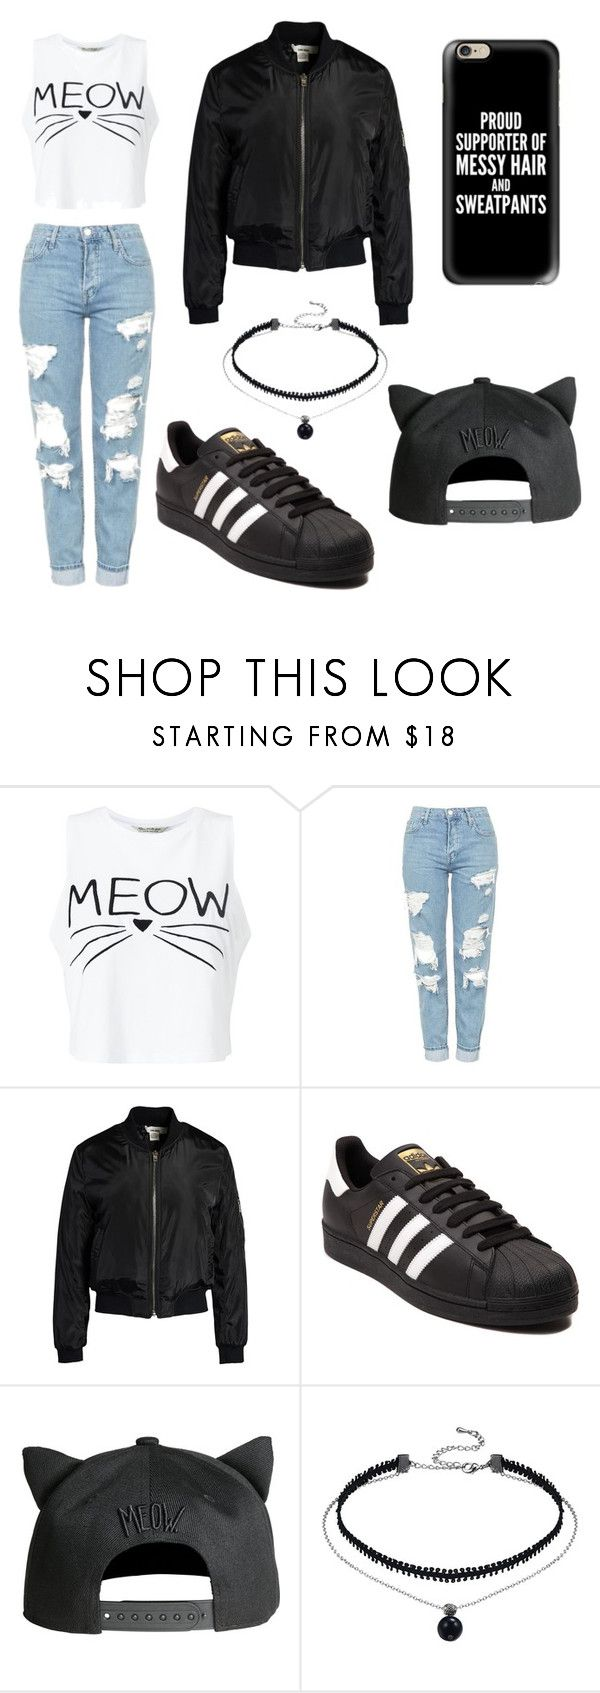 """Untitled #74"" by blackishappycolour ❤ liked on Polyvore featuring Miss Selfridge, Topshop, Sans Souci, adidas and Casetify"